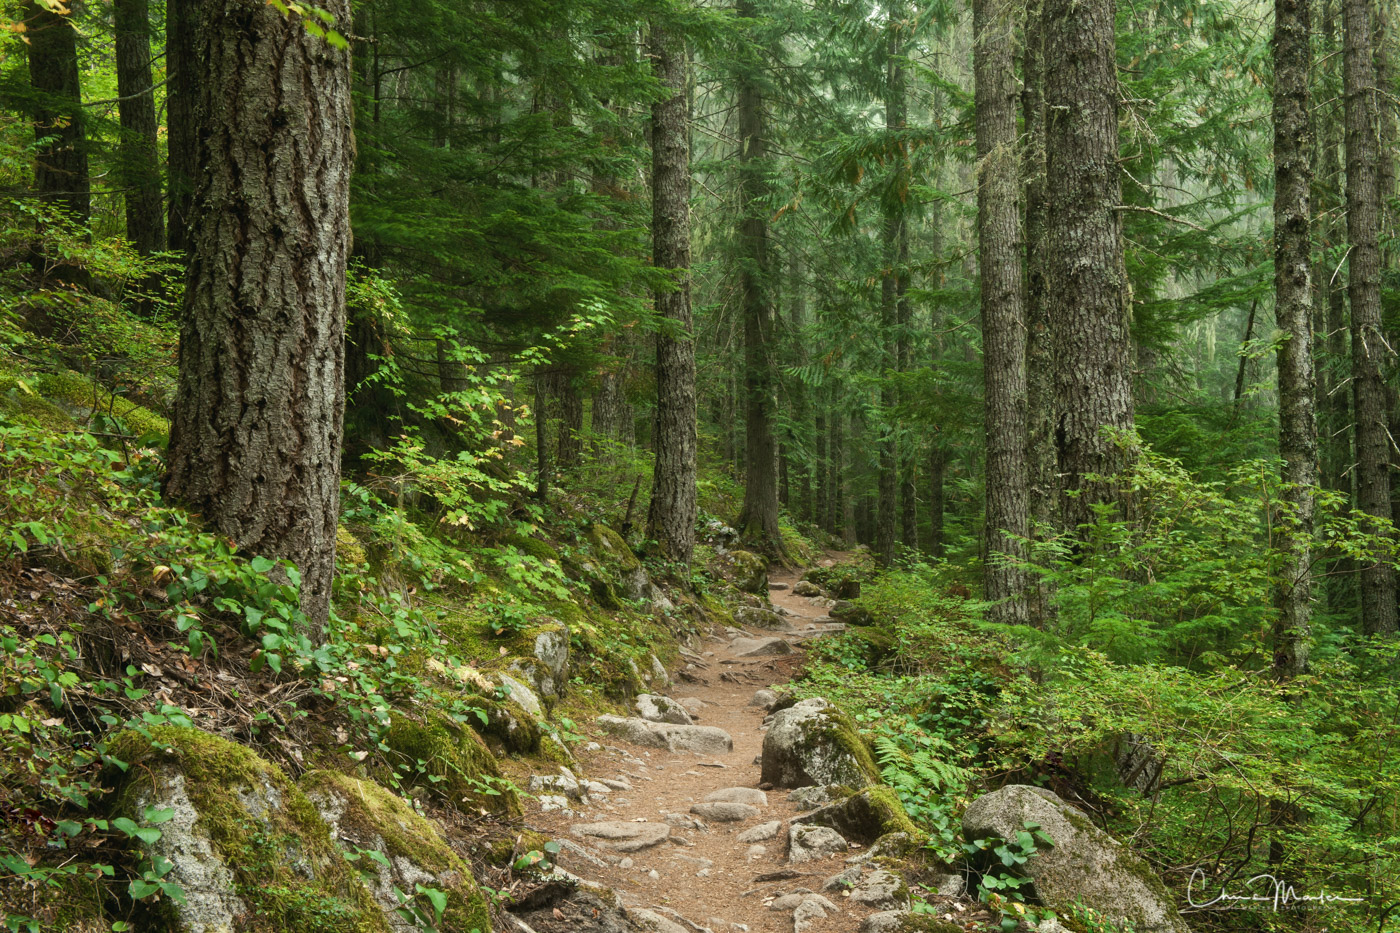 The Pacific Northwest has hundreds of trails which meander through dense old growth forests, rivers, and valleys.  Each trail...